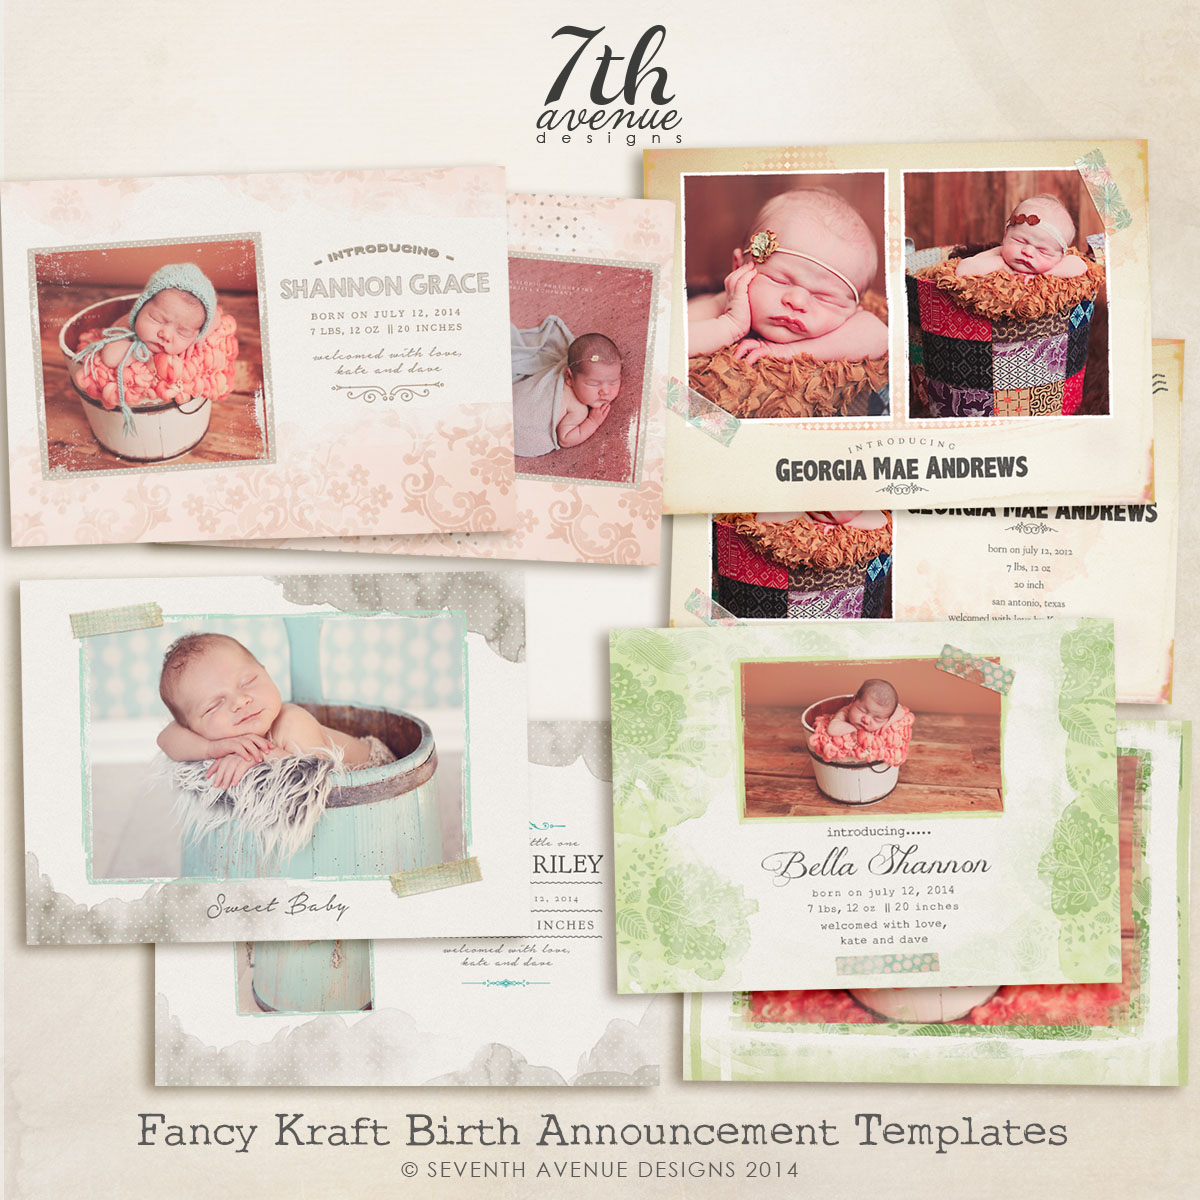 Fancy Kraft Birth Announcement Card Templates